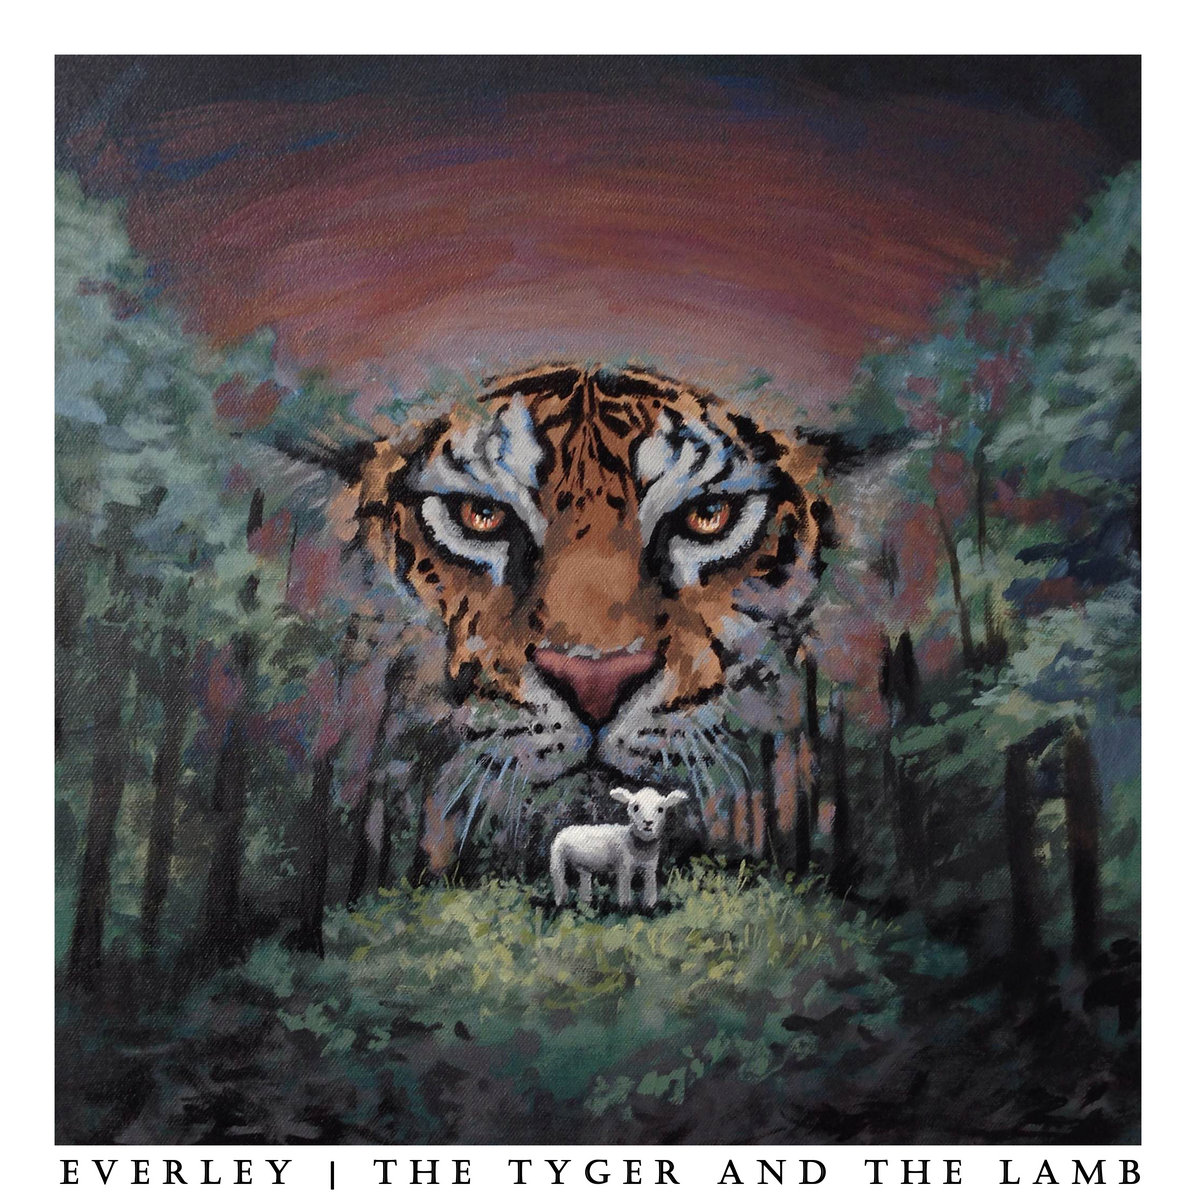 Essay on the tyger and the lamb